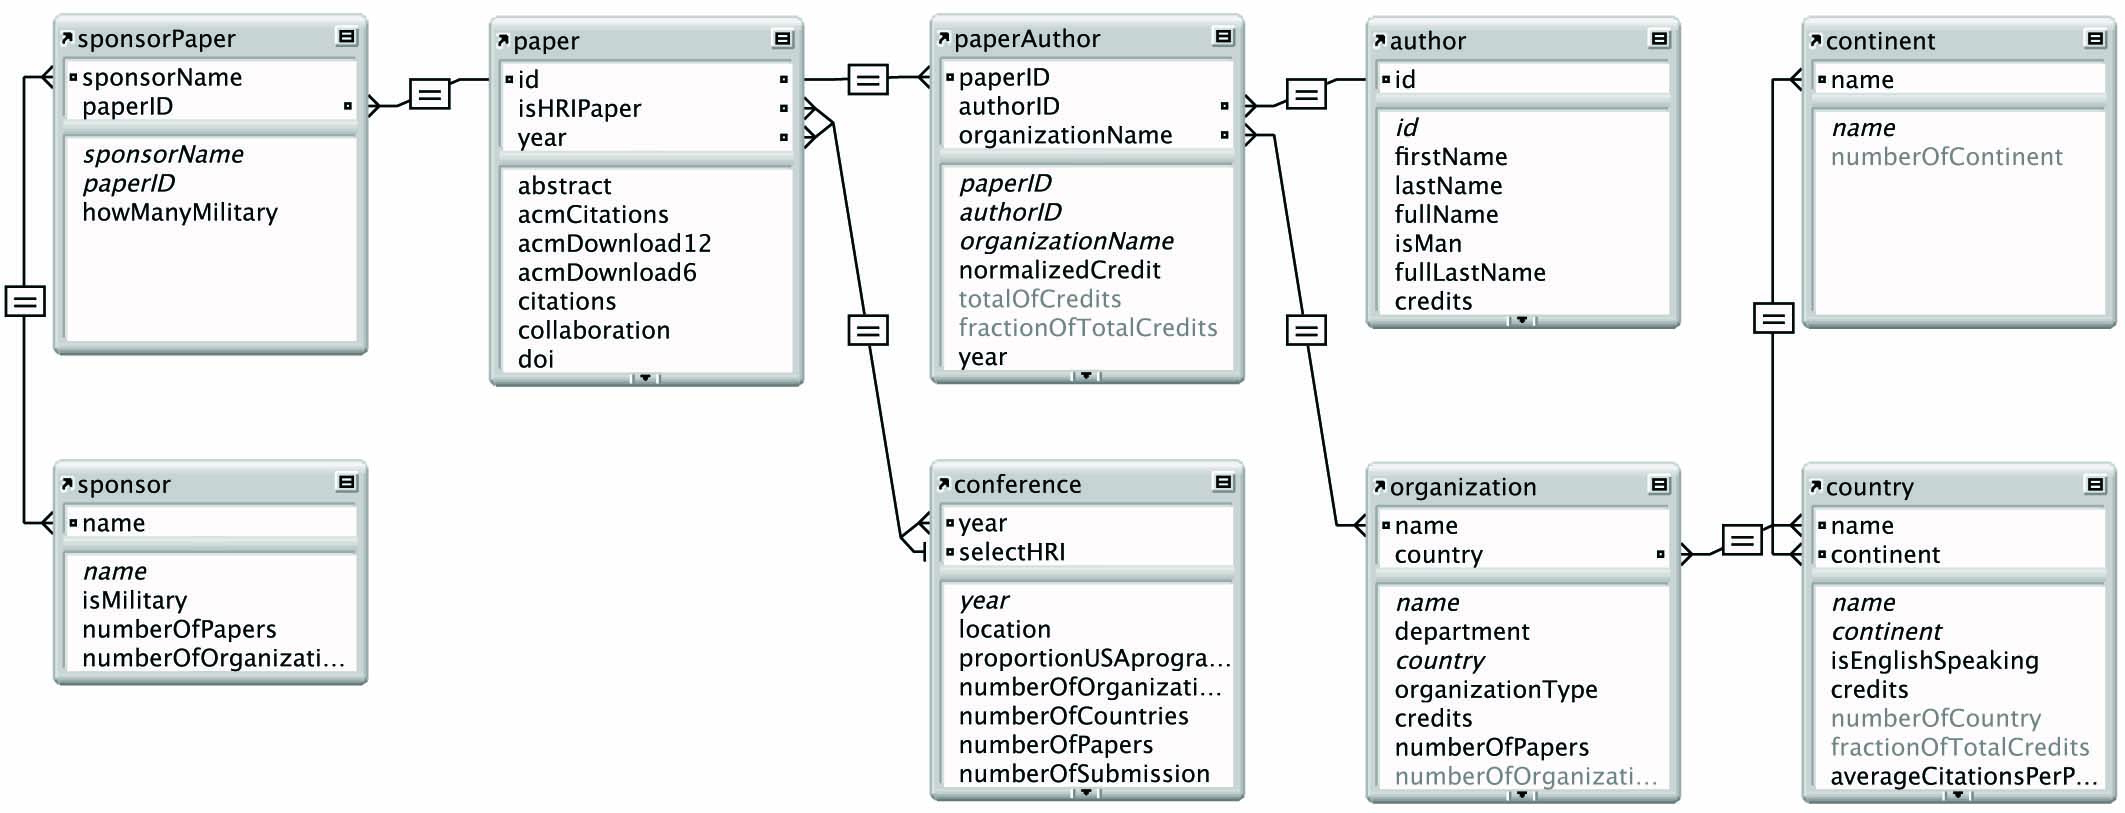 Data Modeling And Entity Relationship Diagram (Erd) - Entity in Er Diagram Many To Many Relationship Example